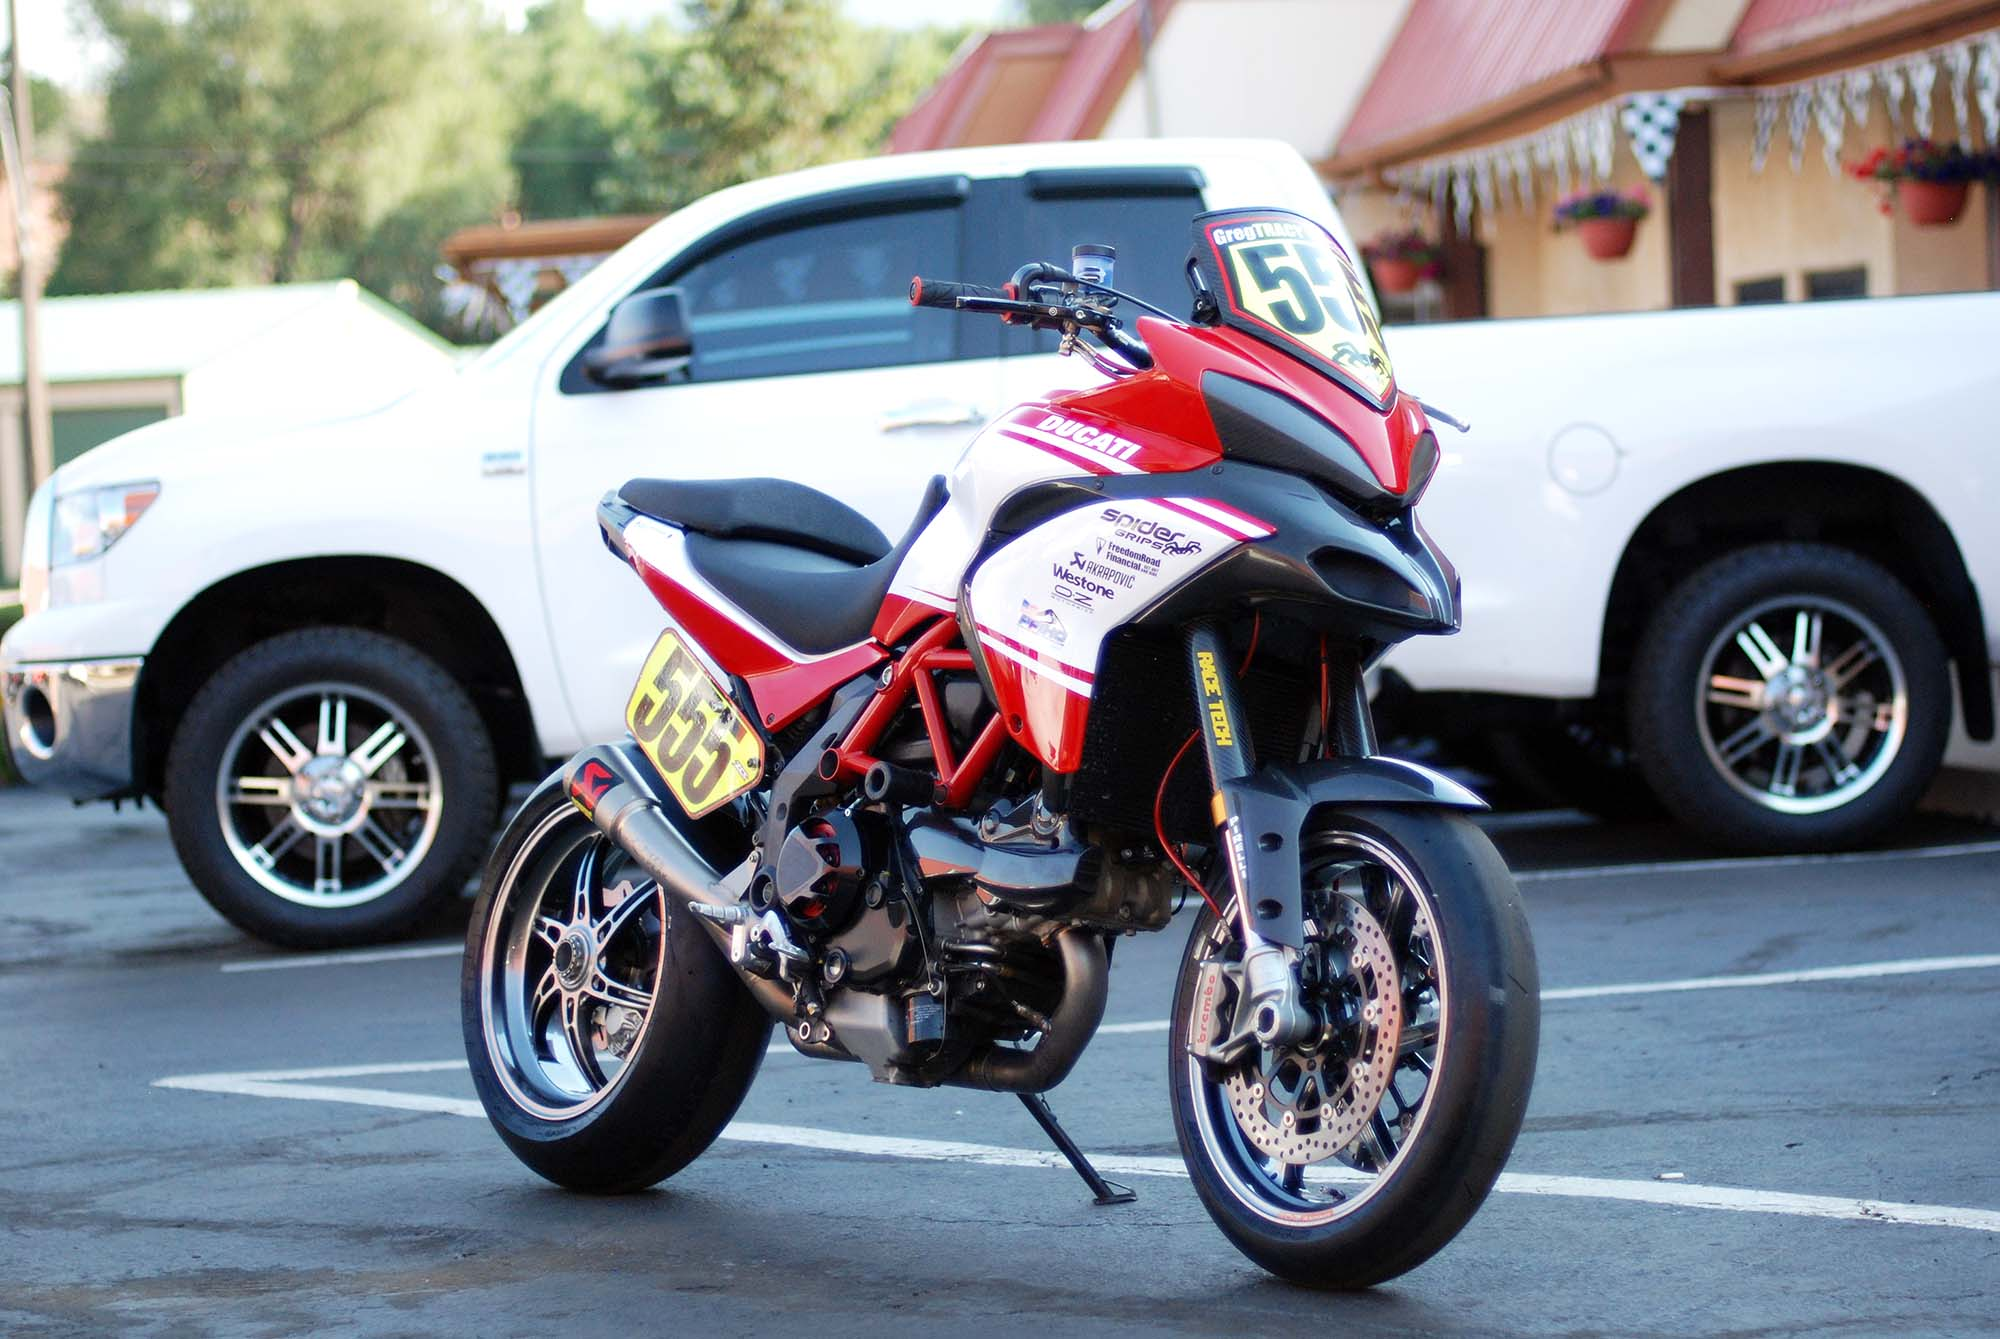 Ducati Multistrada 1200 S Pikes Peak Edition 2013 images #80016